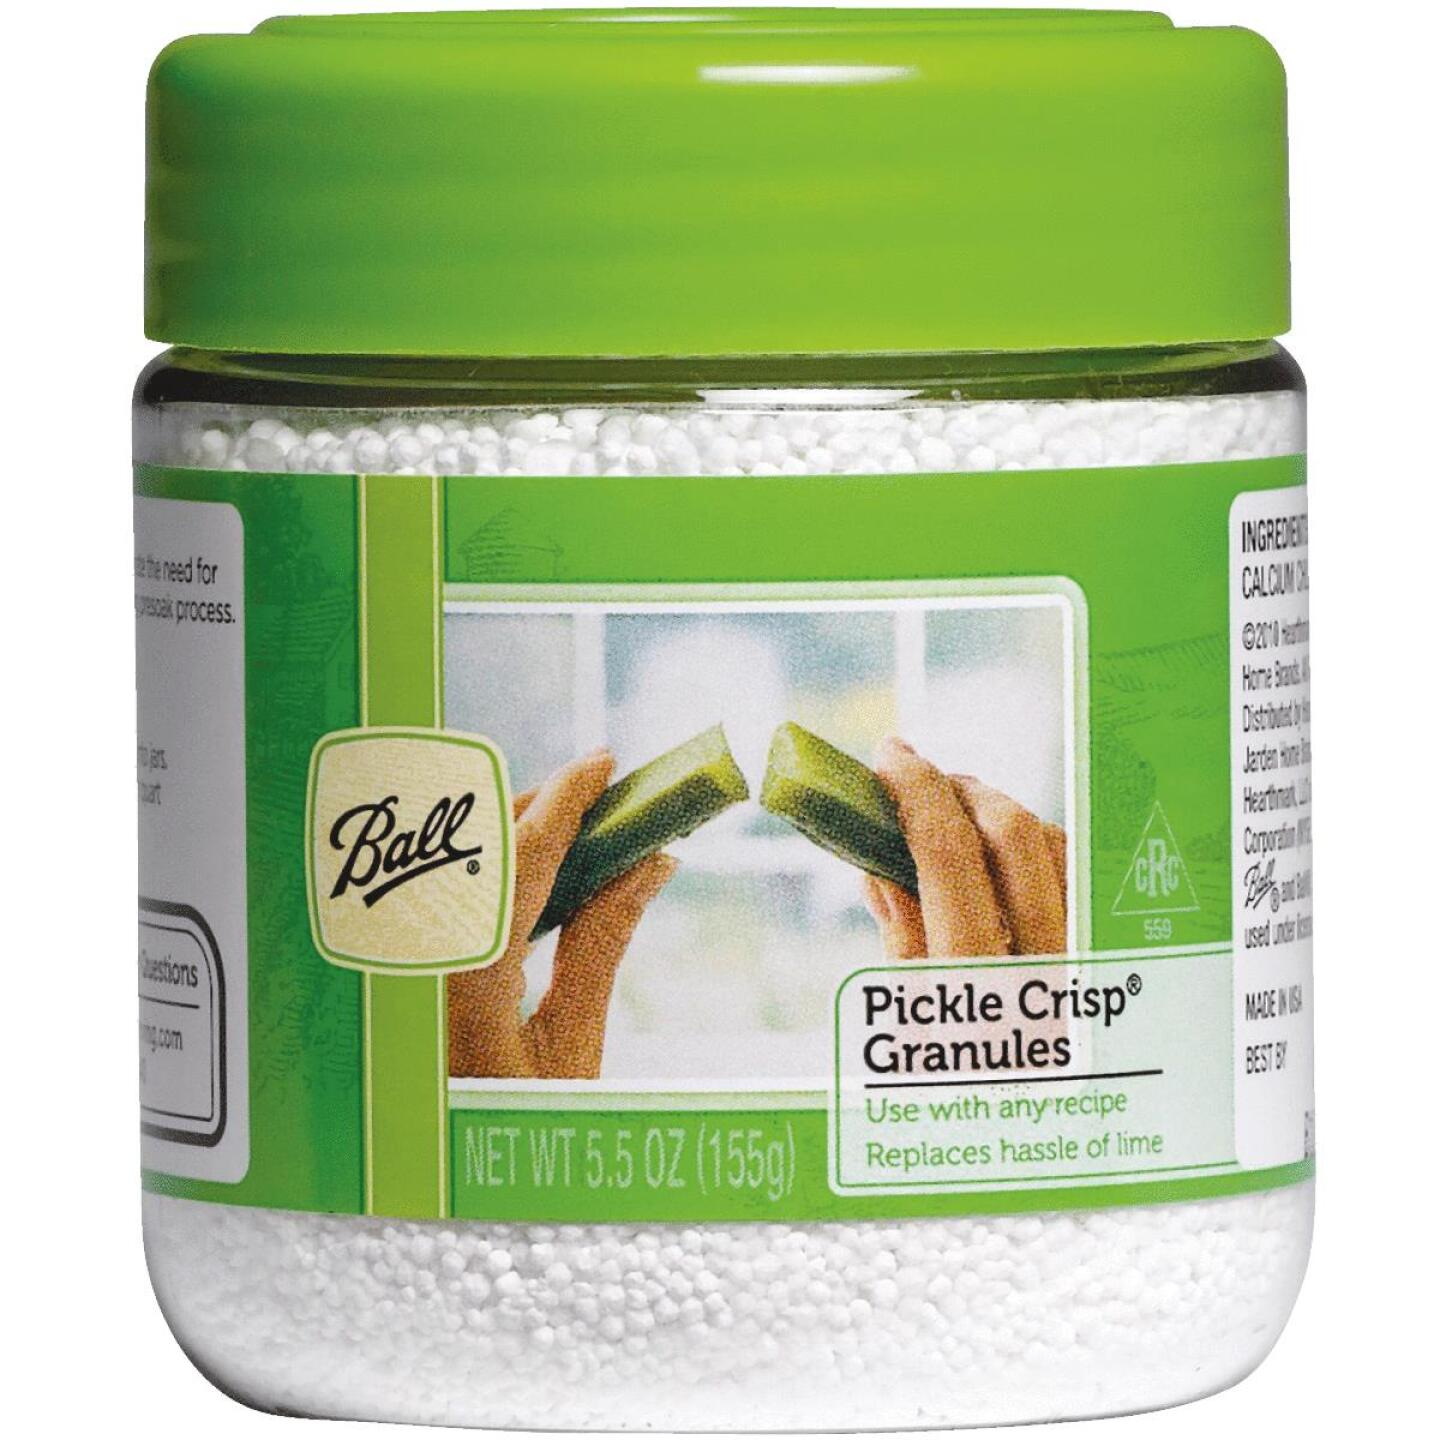 Ball Pickle Crisp 2.75 Oz. Pickling Mix Granules Image 1